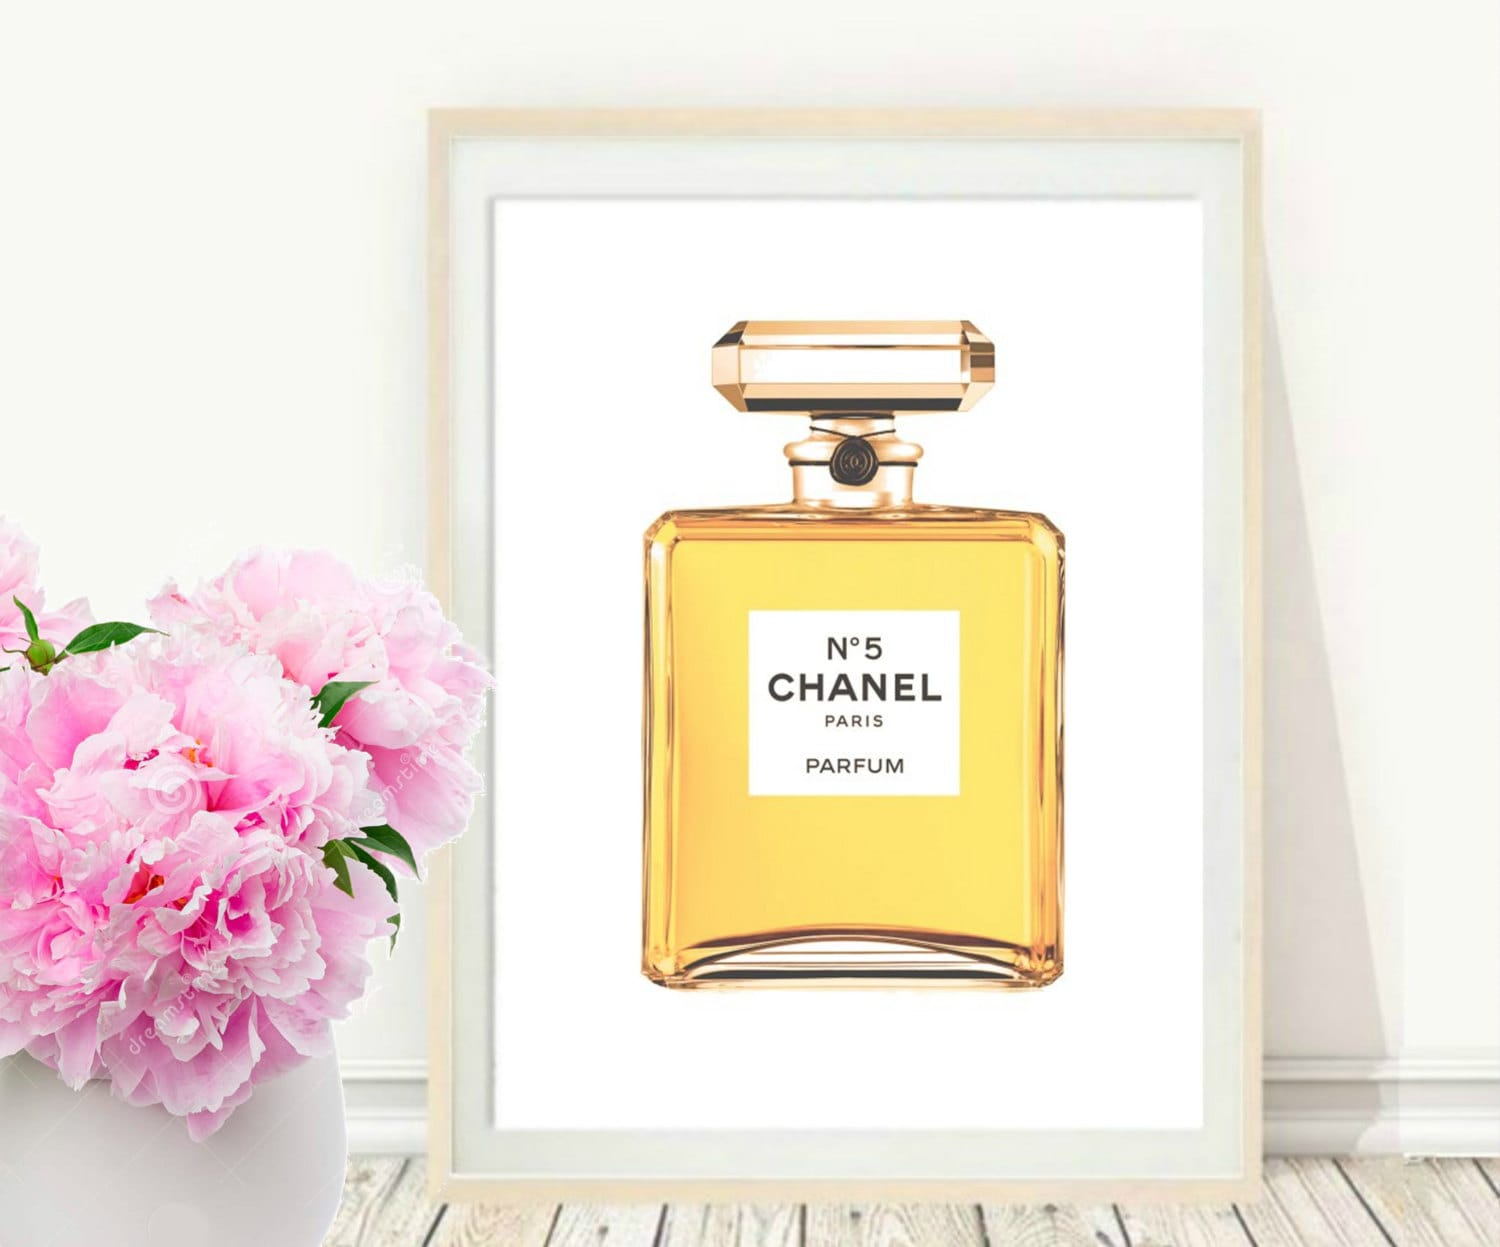 Chanel Wall Art Coco Chanel perfume Printable Art Perfume | Etsy